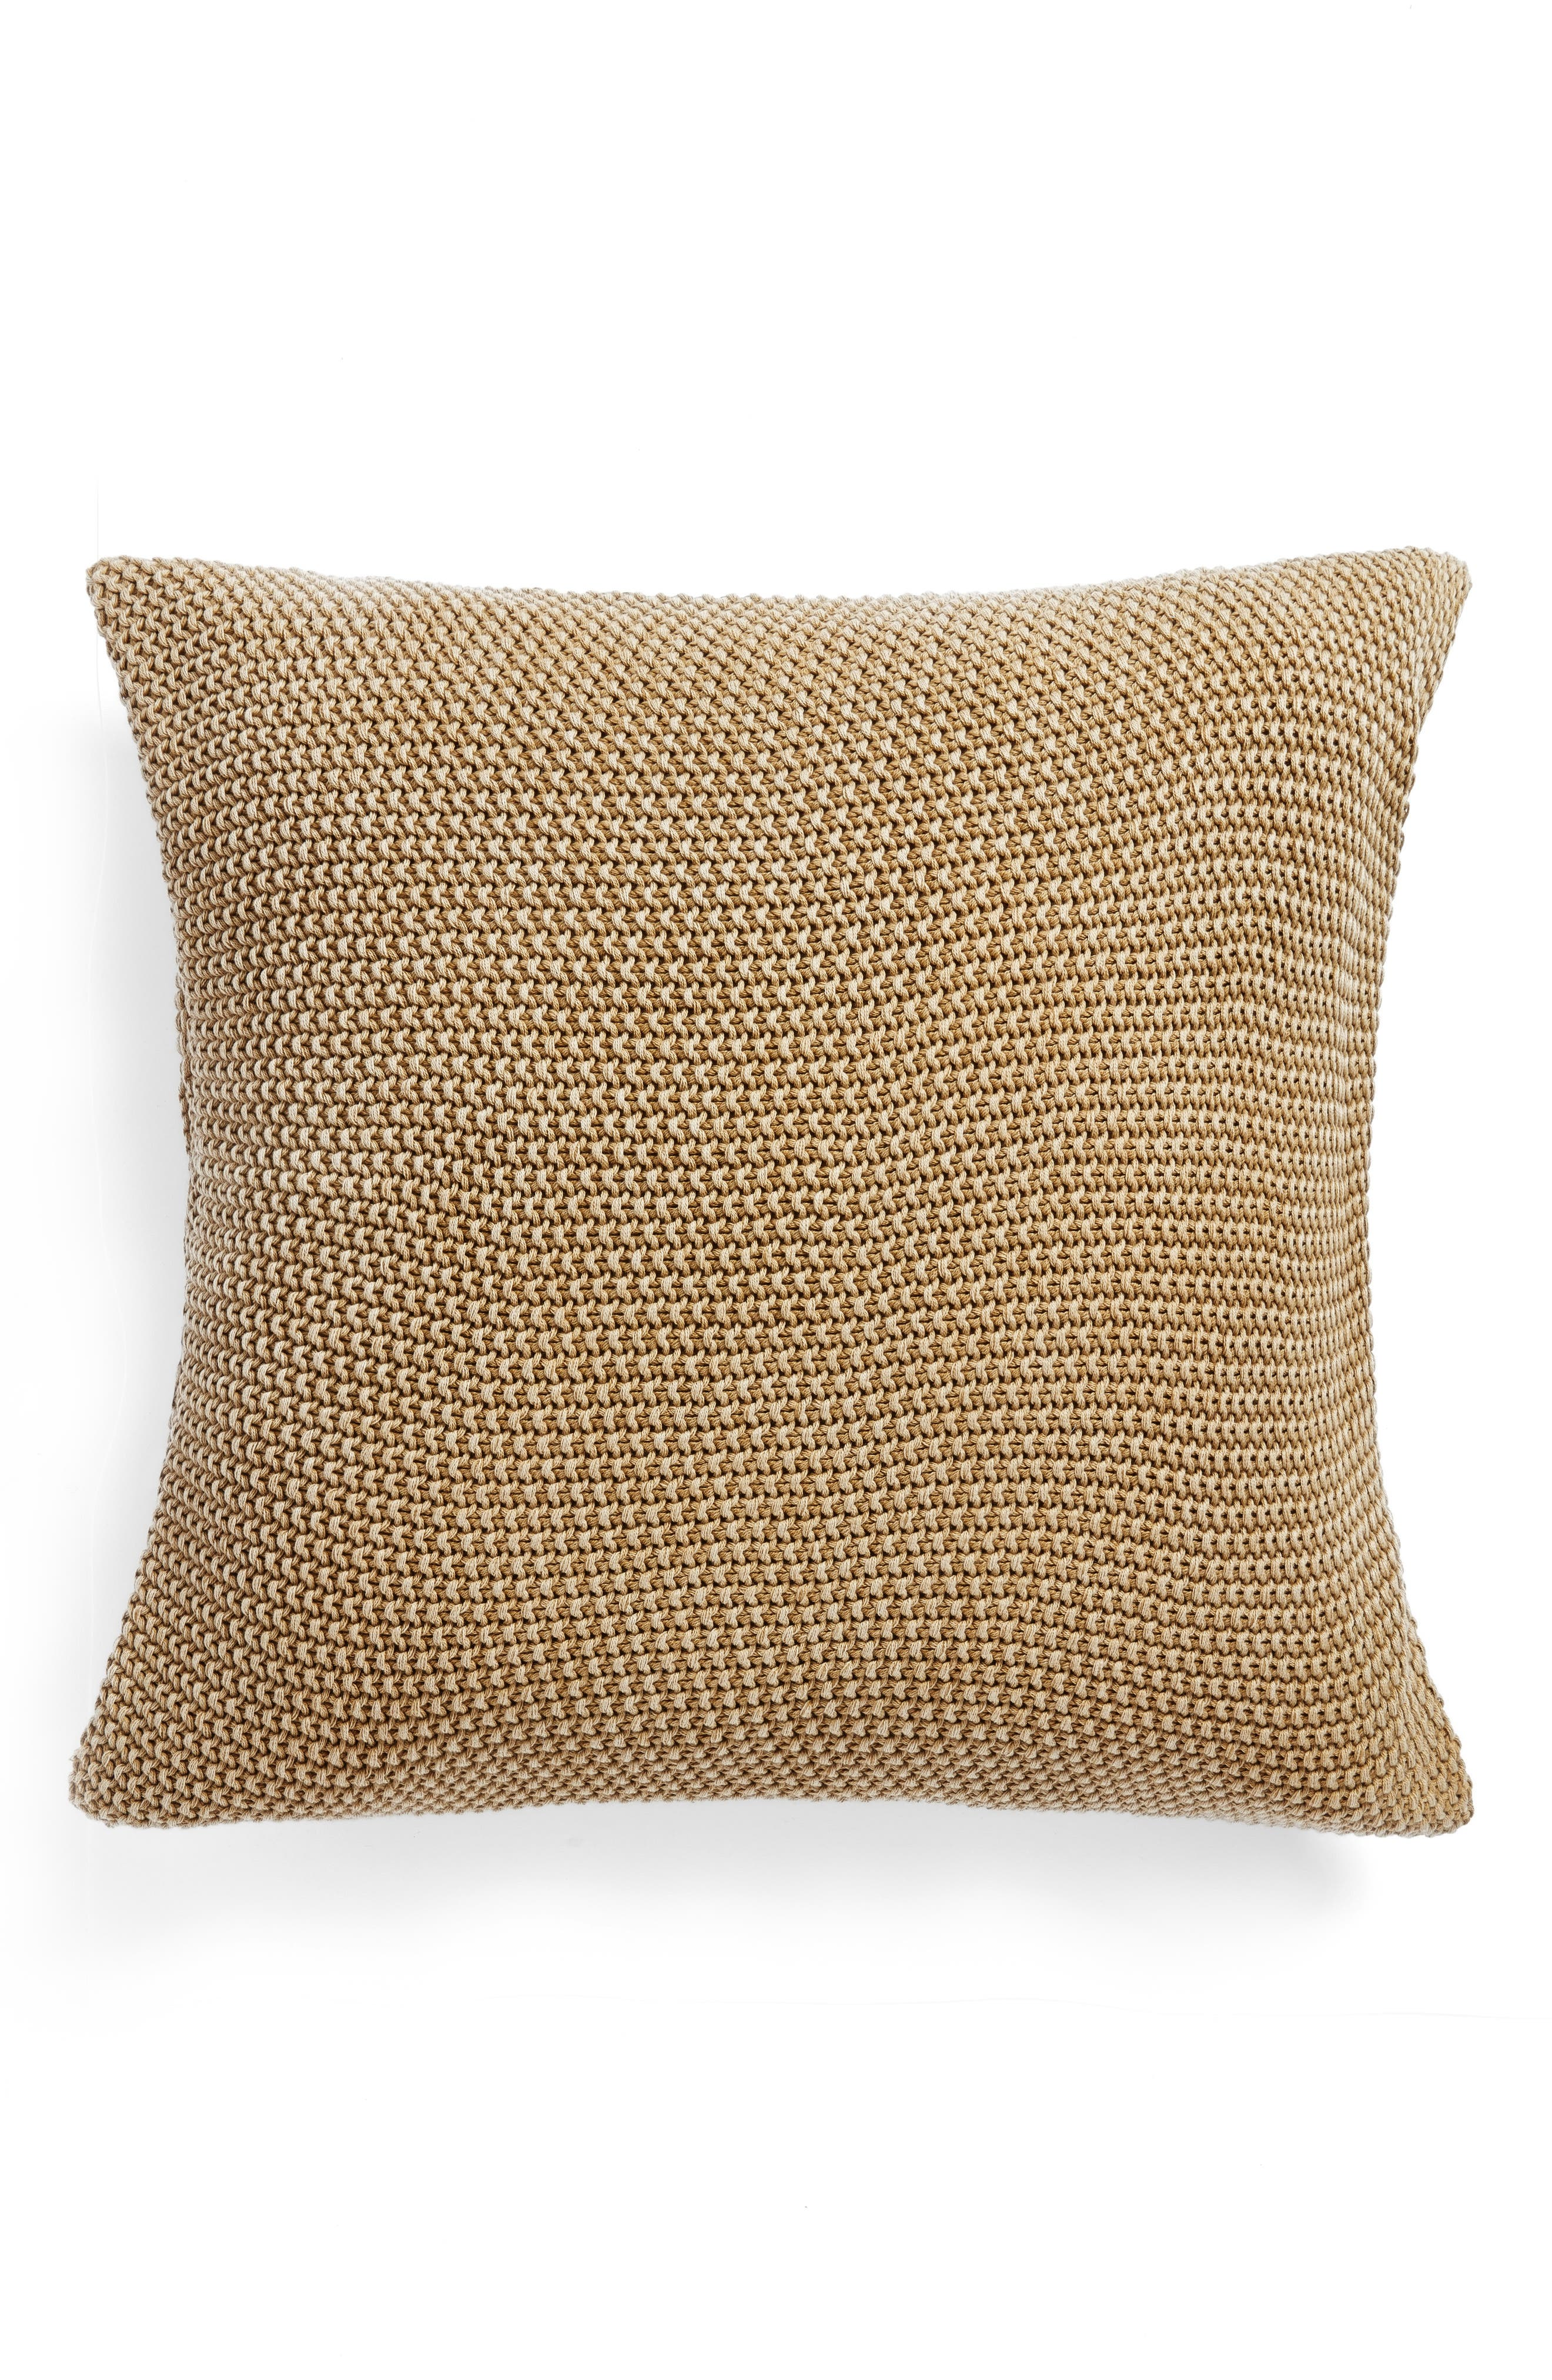 Seed Stitch Accent Pillow,                         Main,                         color, 300